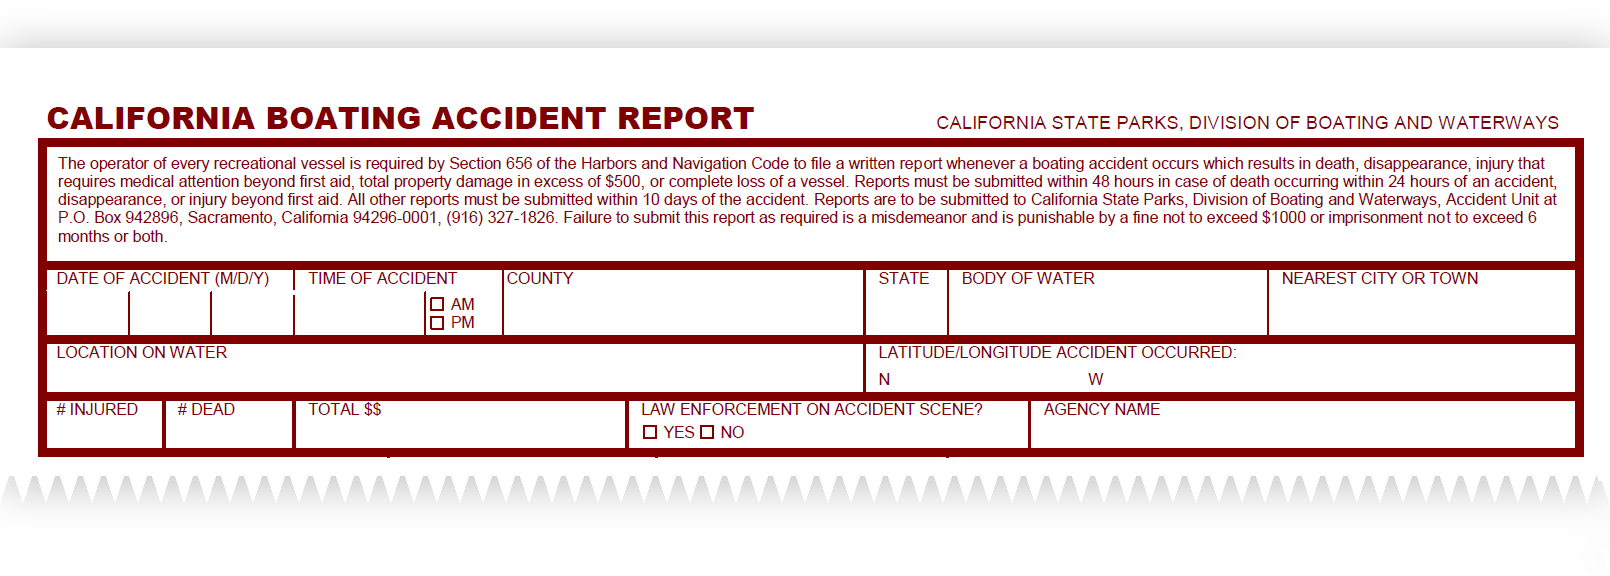 Boating Accident Report Forms